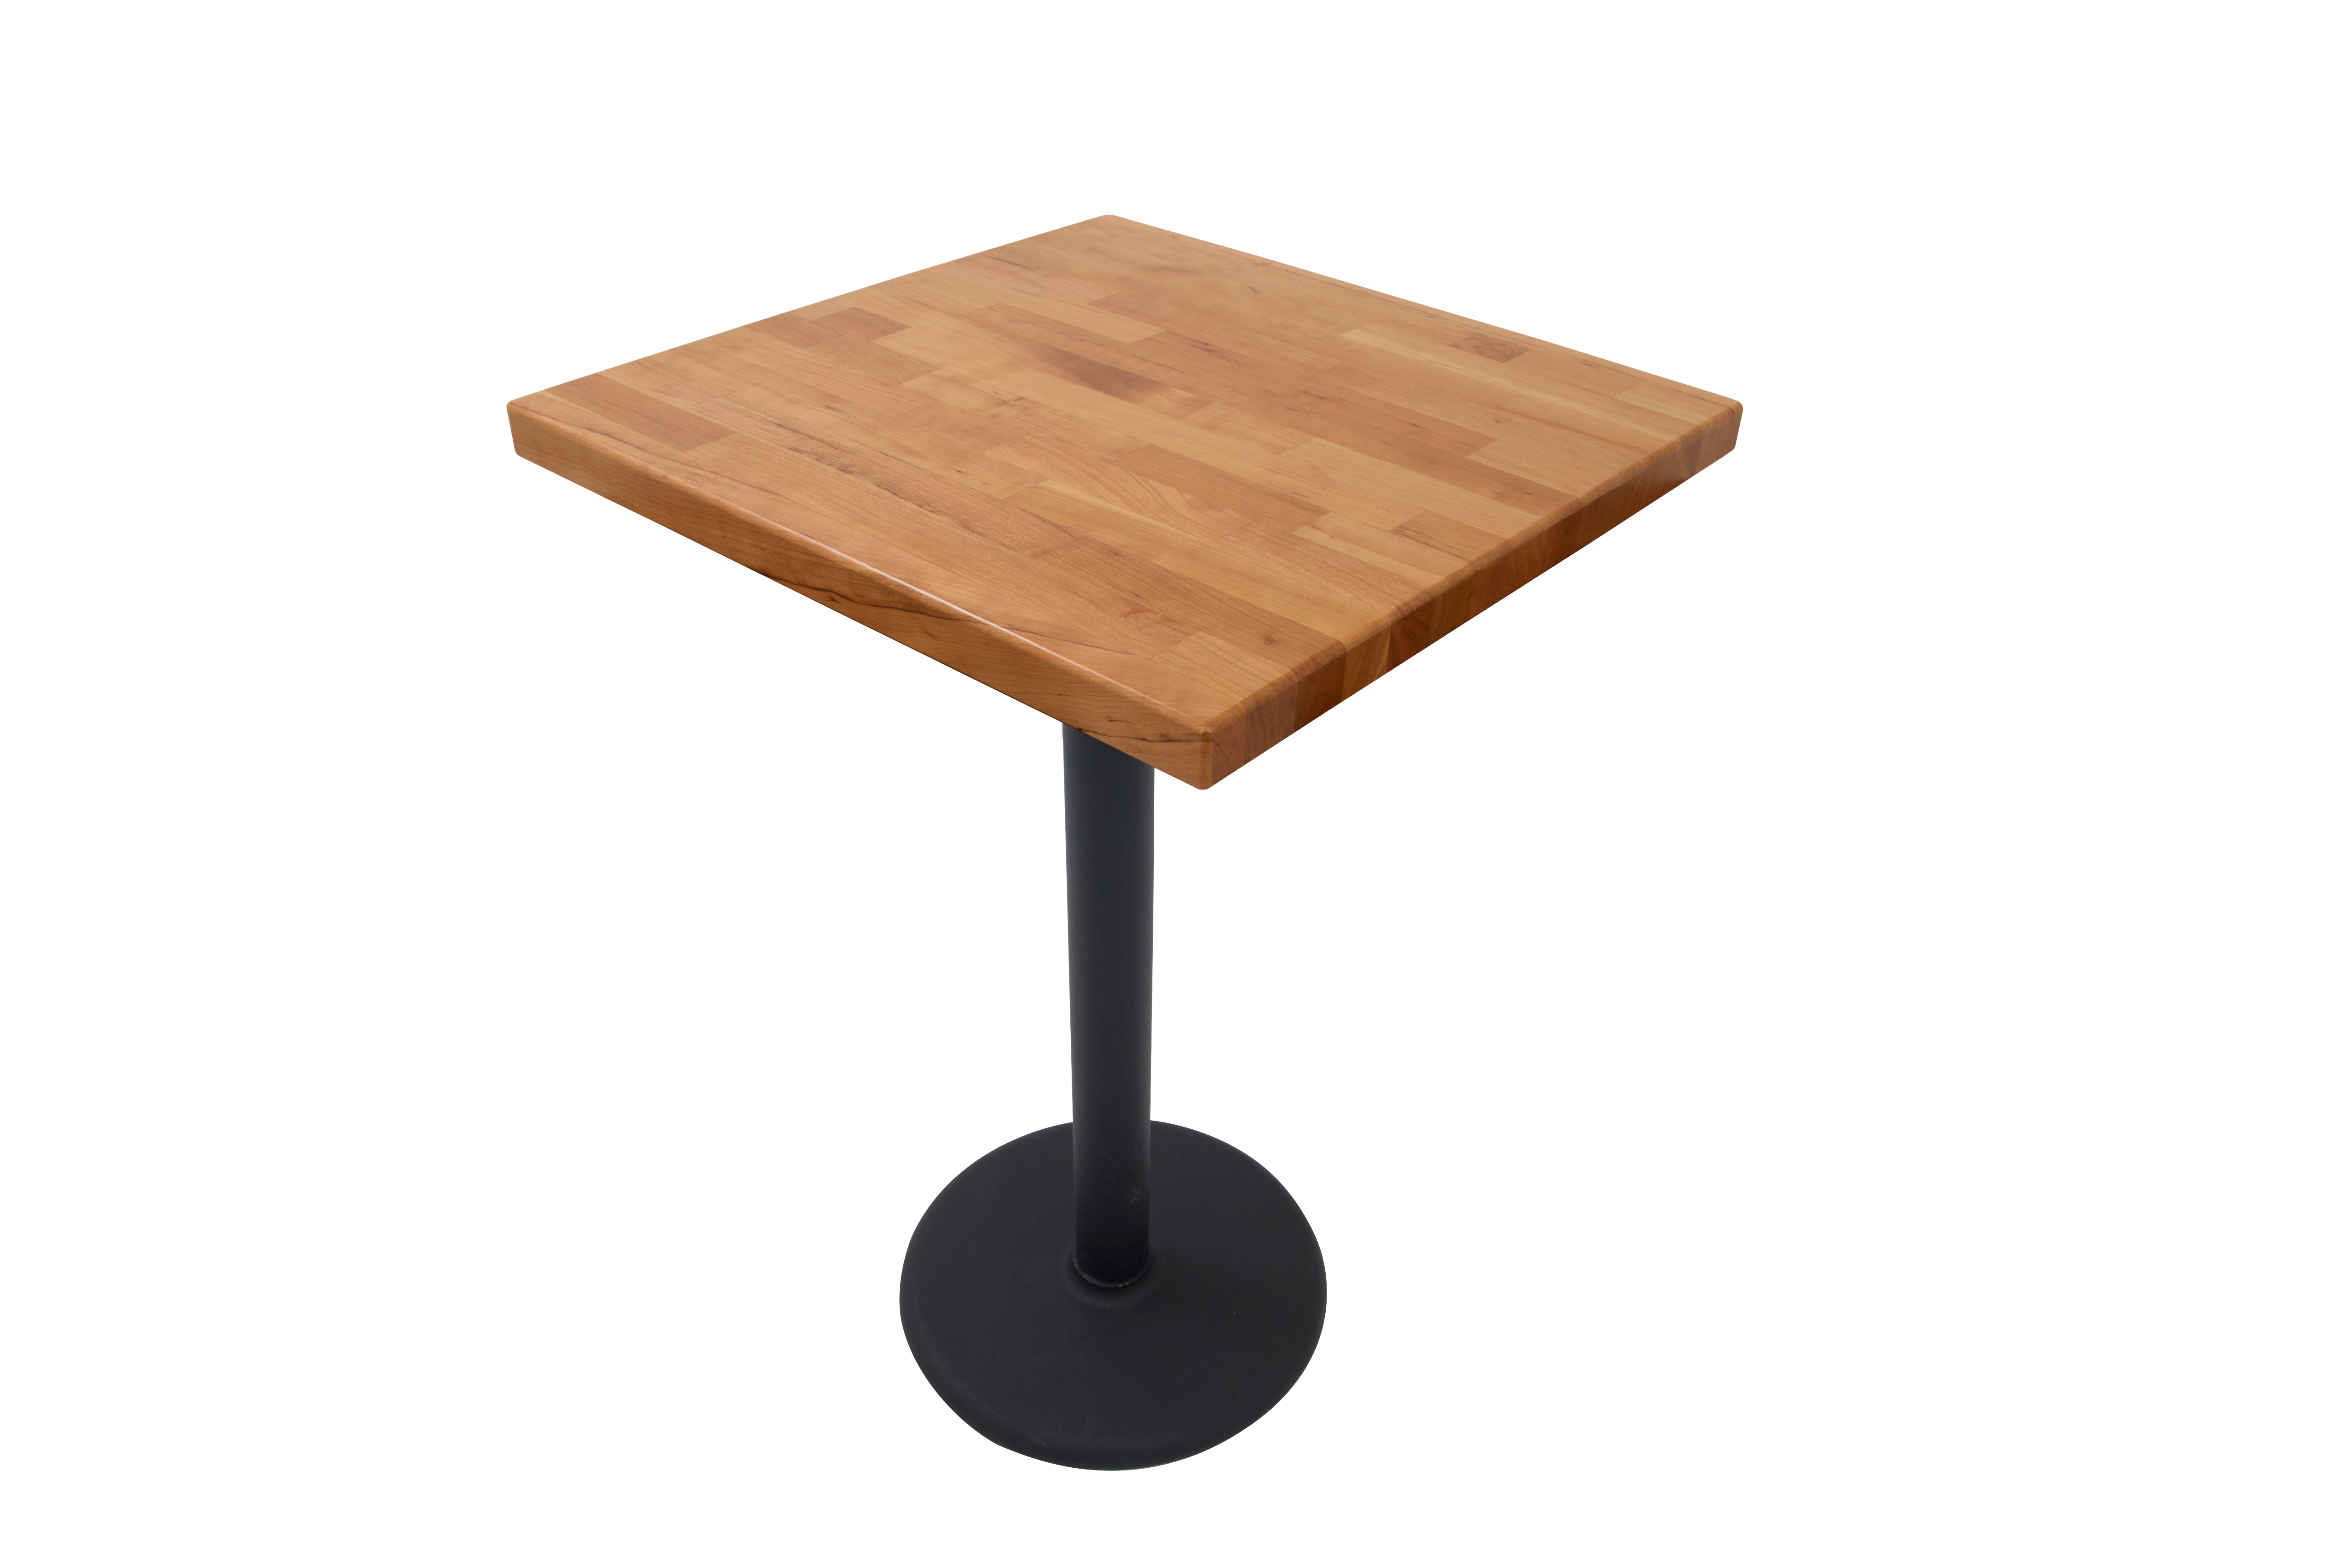 John Boos Cherry Blended Grain Butcher Block Table Top on Metal Disc Base